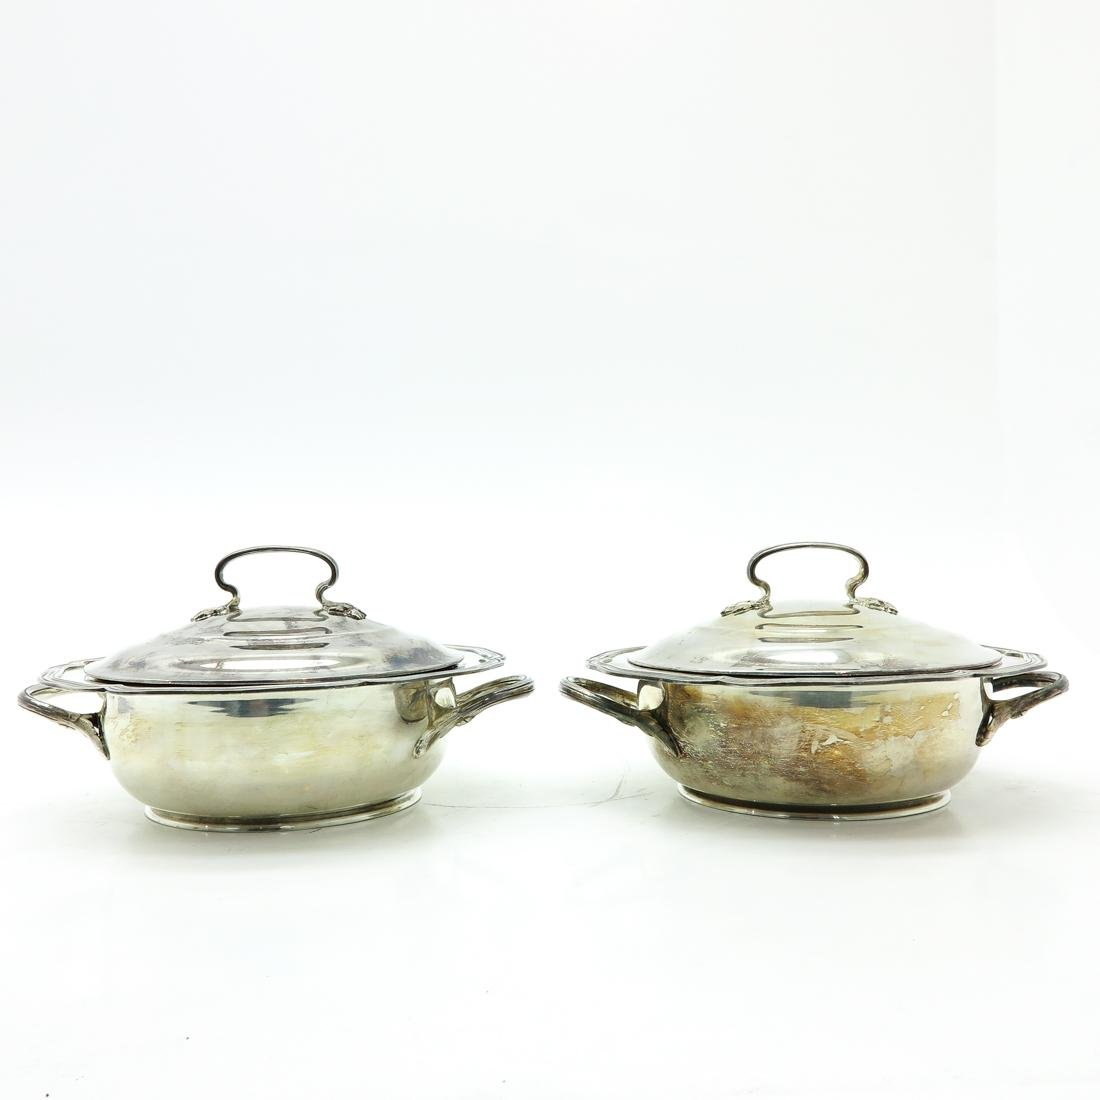 Lot of 2 Silver Wolfers Covered Serving Dishes